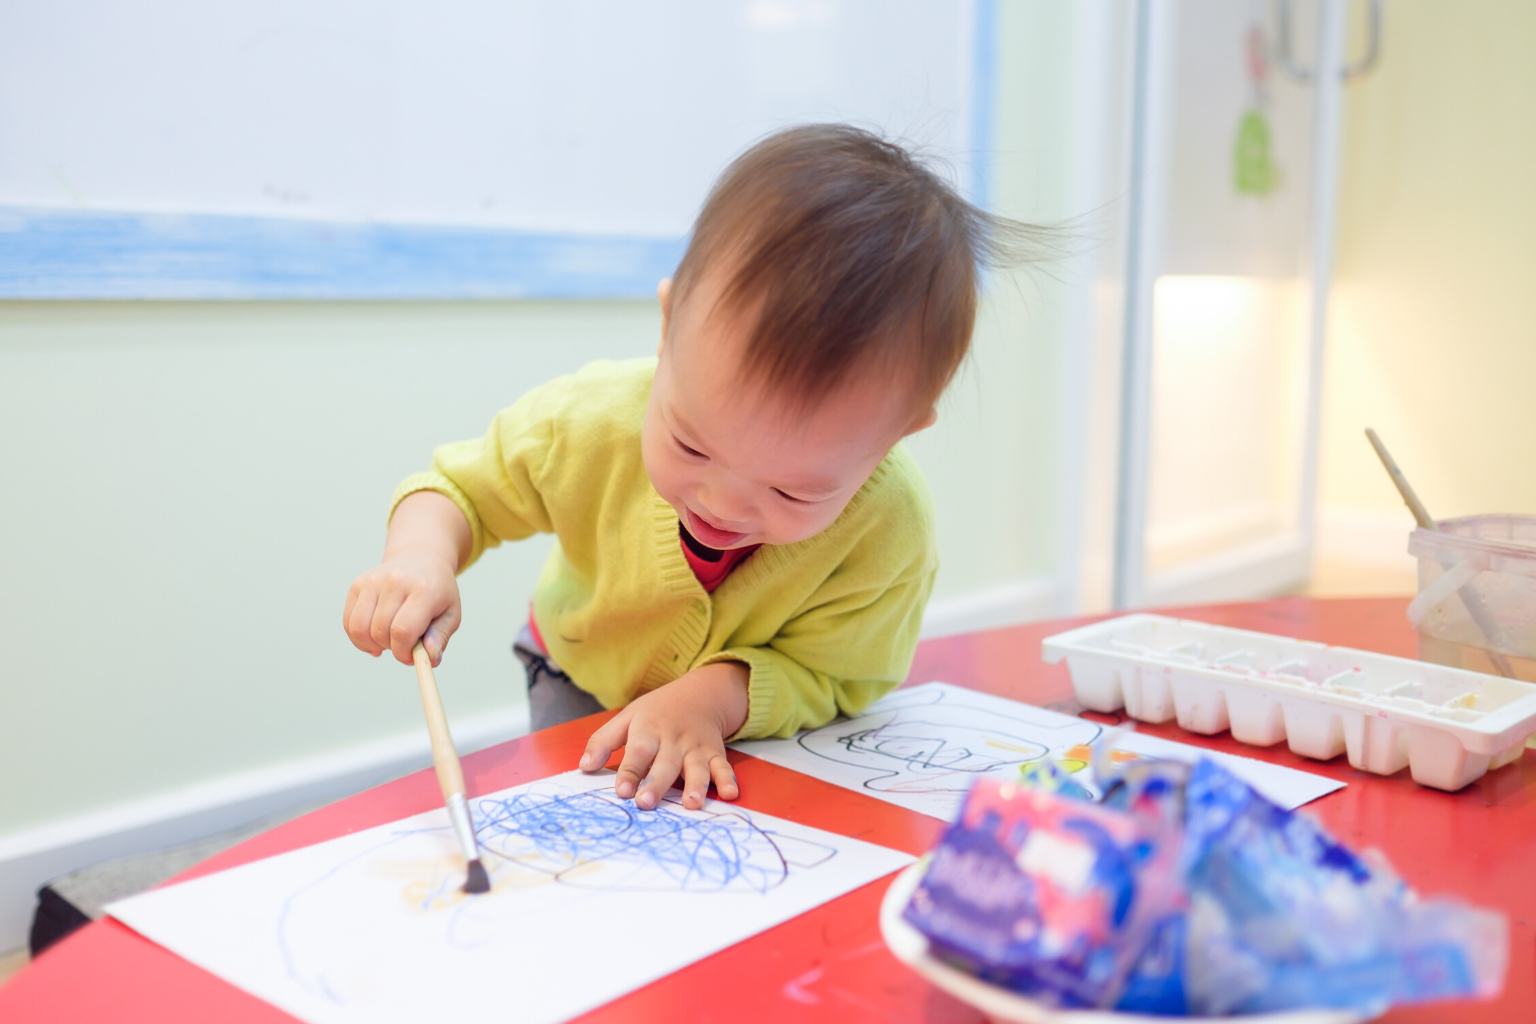 cute smiling 1-year-old 18-month toddler baby boy child painting with brush and water colors at art therapy